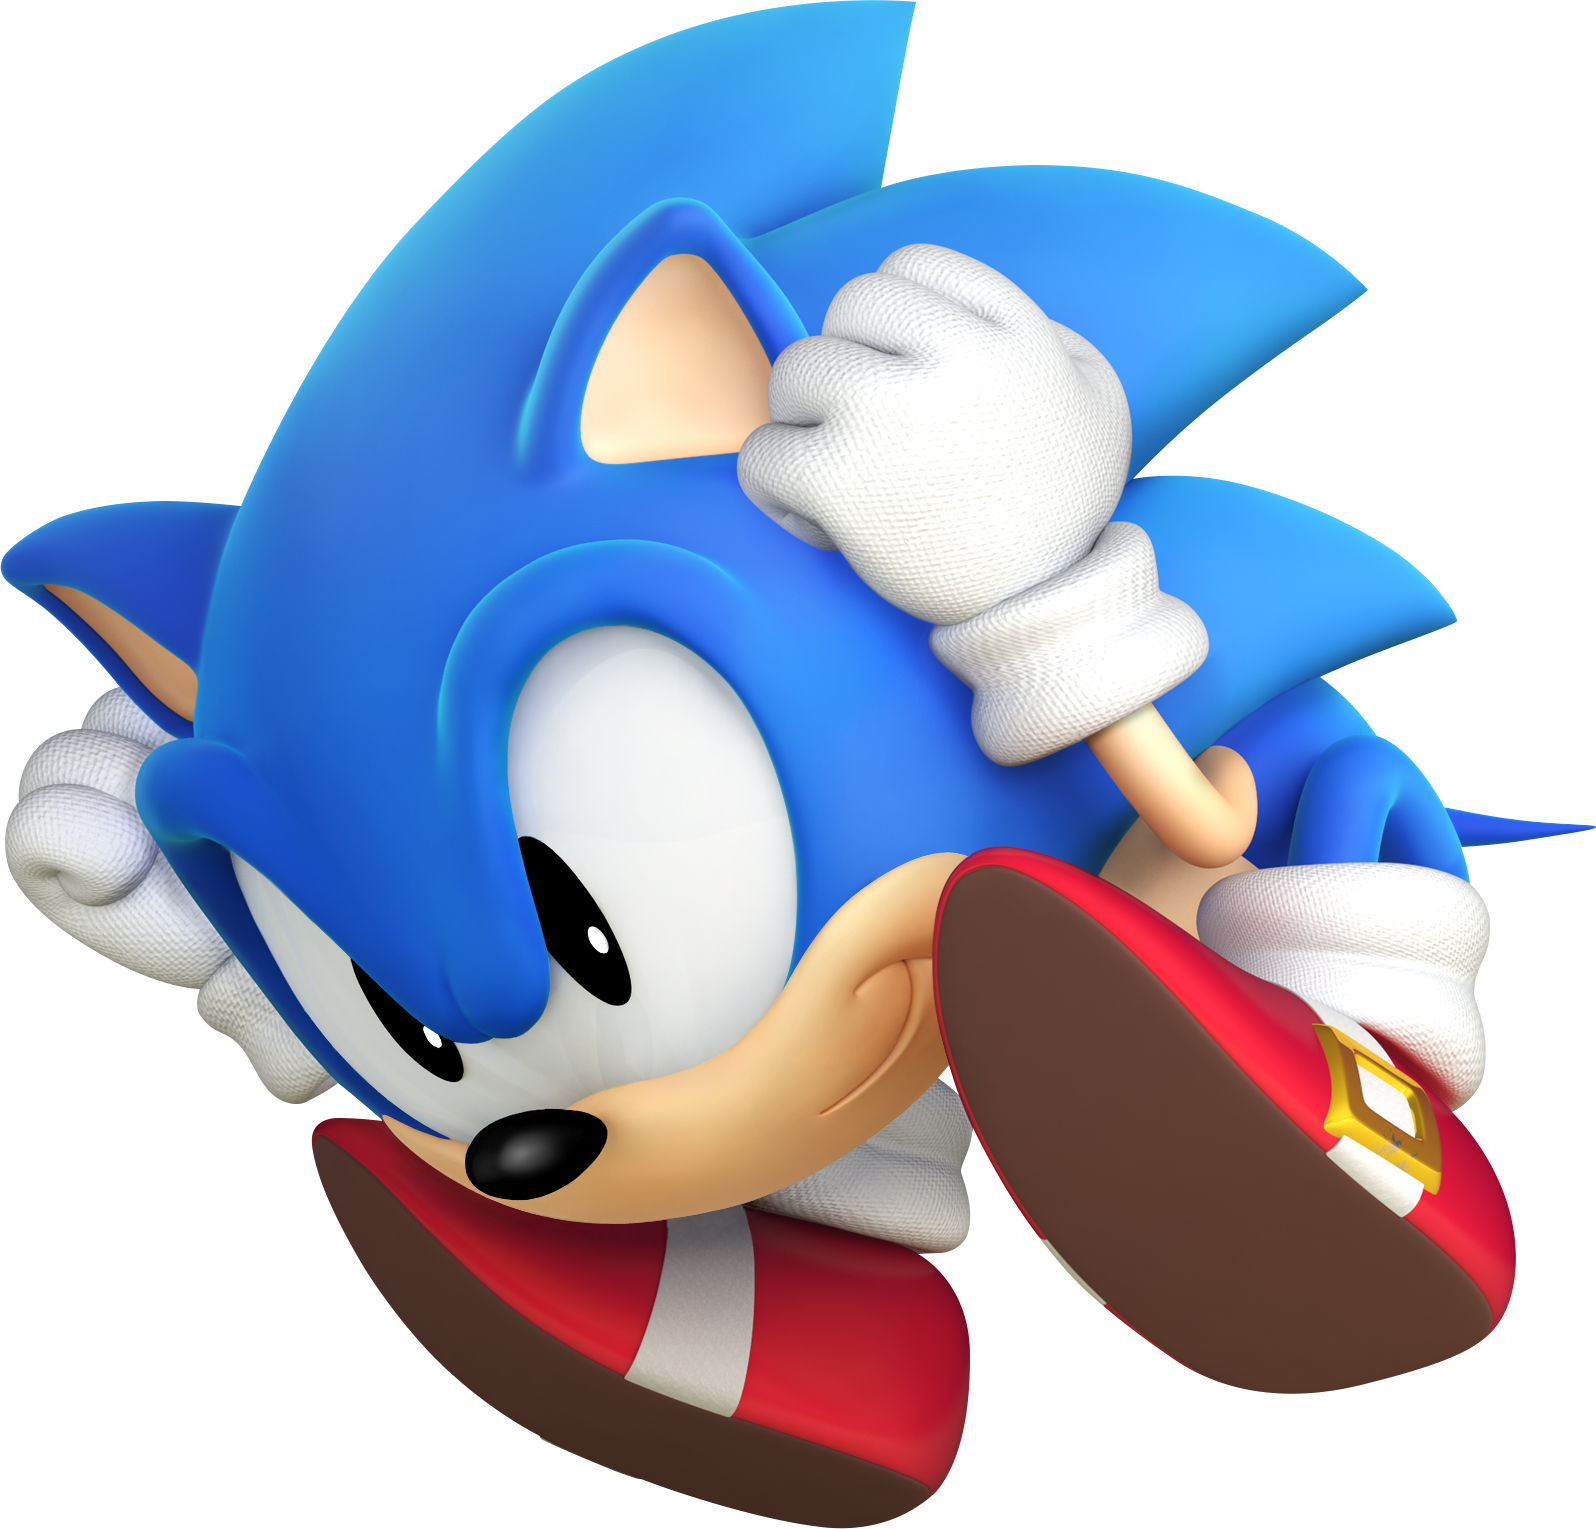 Spin Attack Sonic News Network Fandom Powered By Wikia